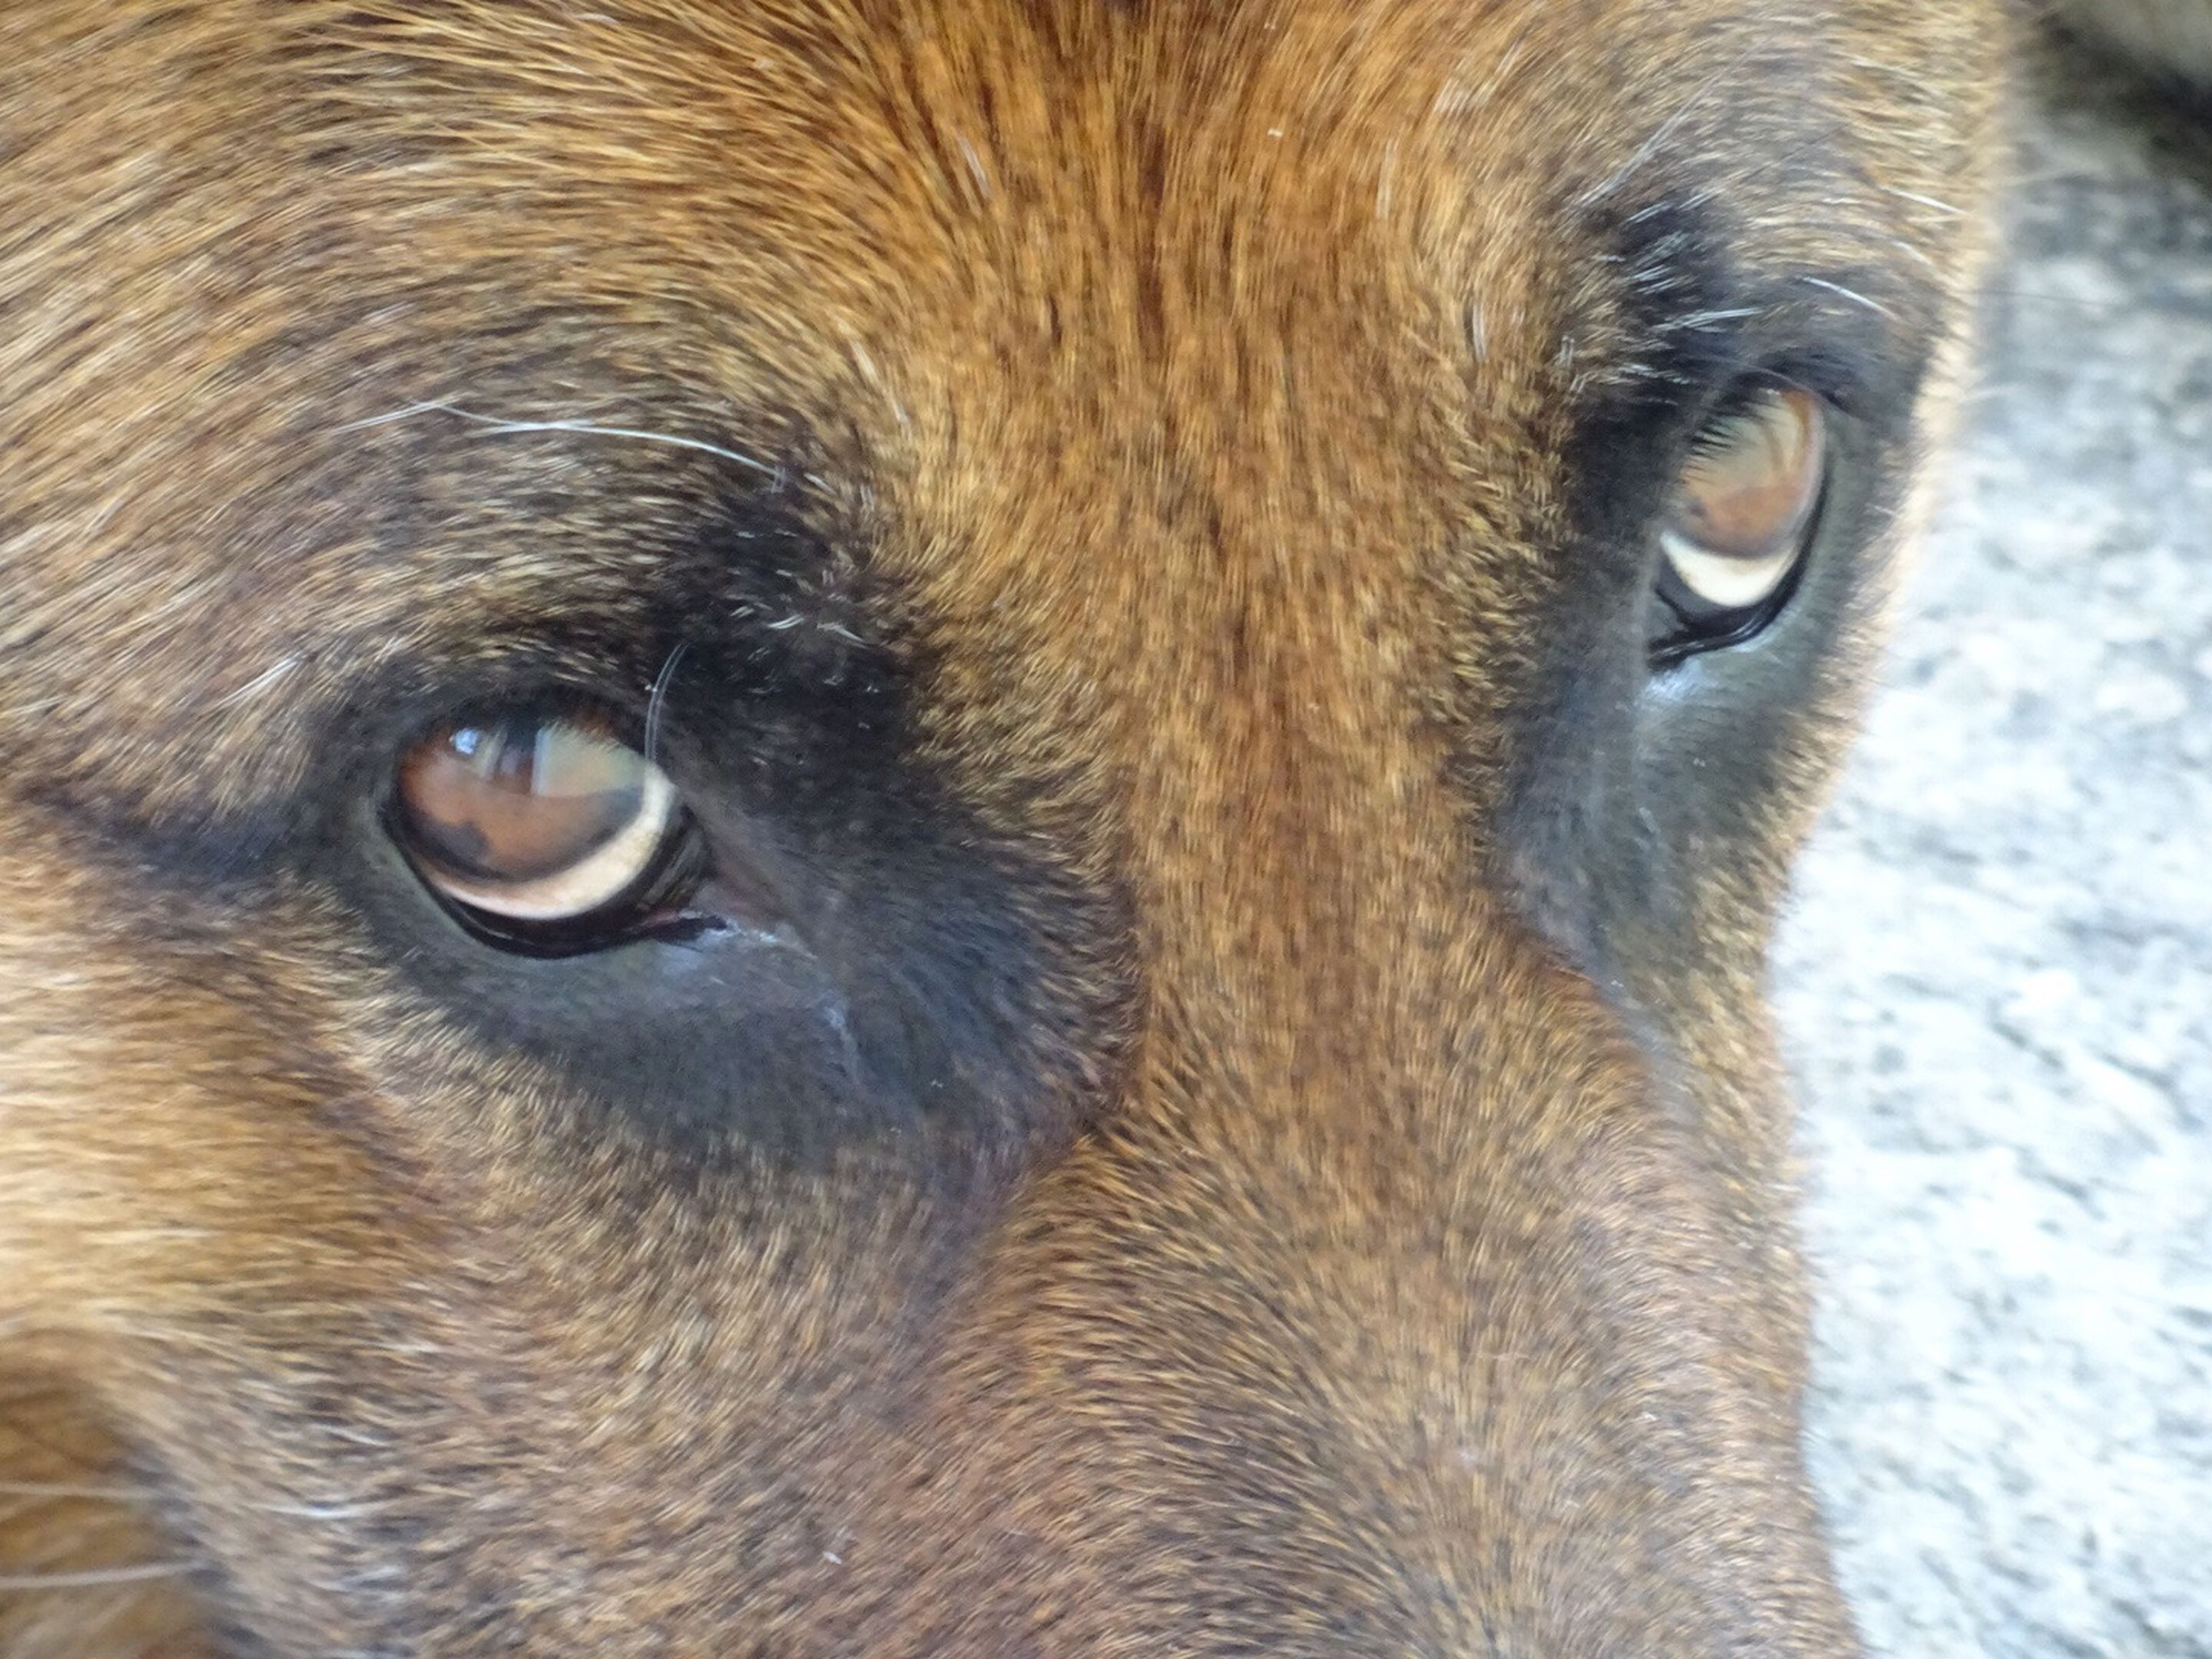 animal themes, one animal, domestic animals, animal head, mammal, animal body part, close-up, pets, animal eye, dog, part of, portrait, animal nose, snout, looking at camera, extreme close up, full frame, animal hair, focus on foreground, zoology